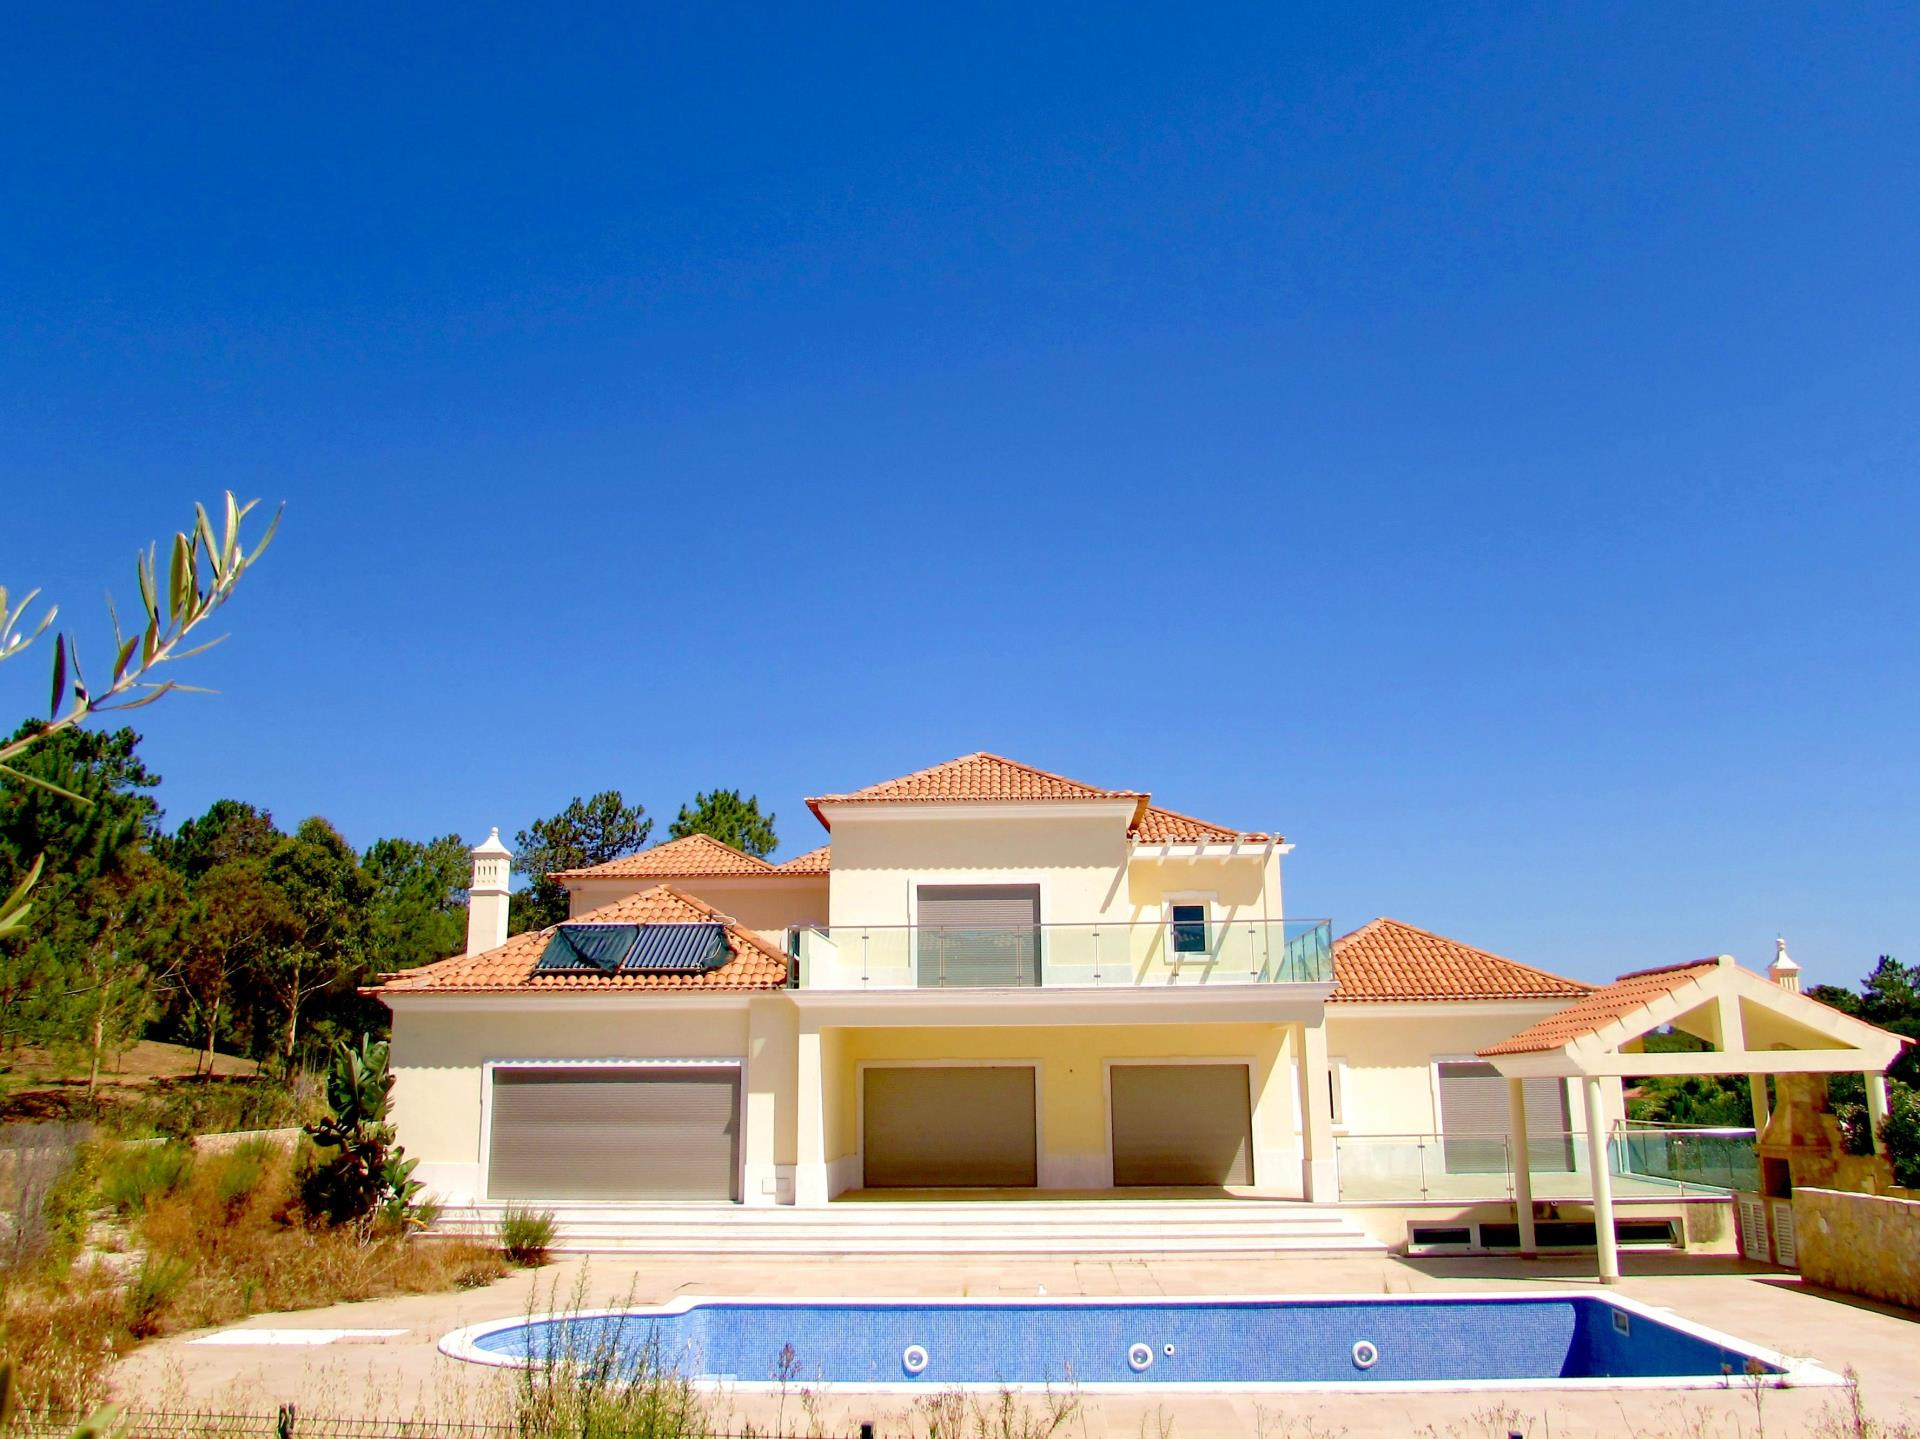 独户住宅 为 销售 在 House, 6 bedrooms, for Sale Loule, Algarve 葡萄牙